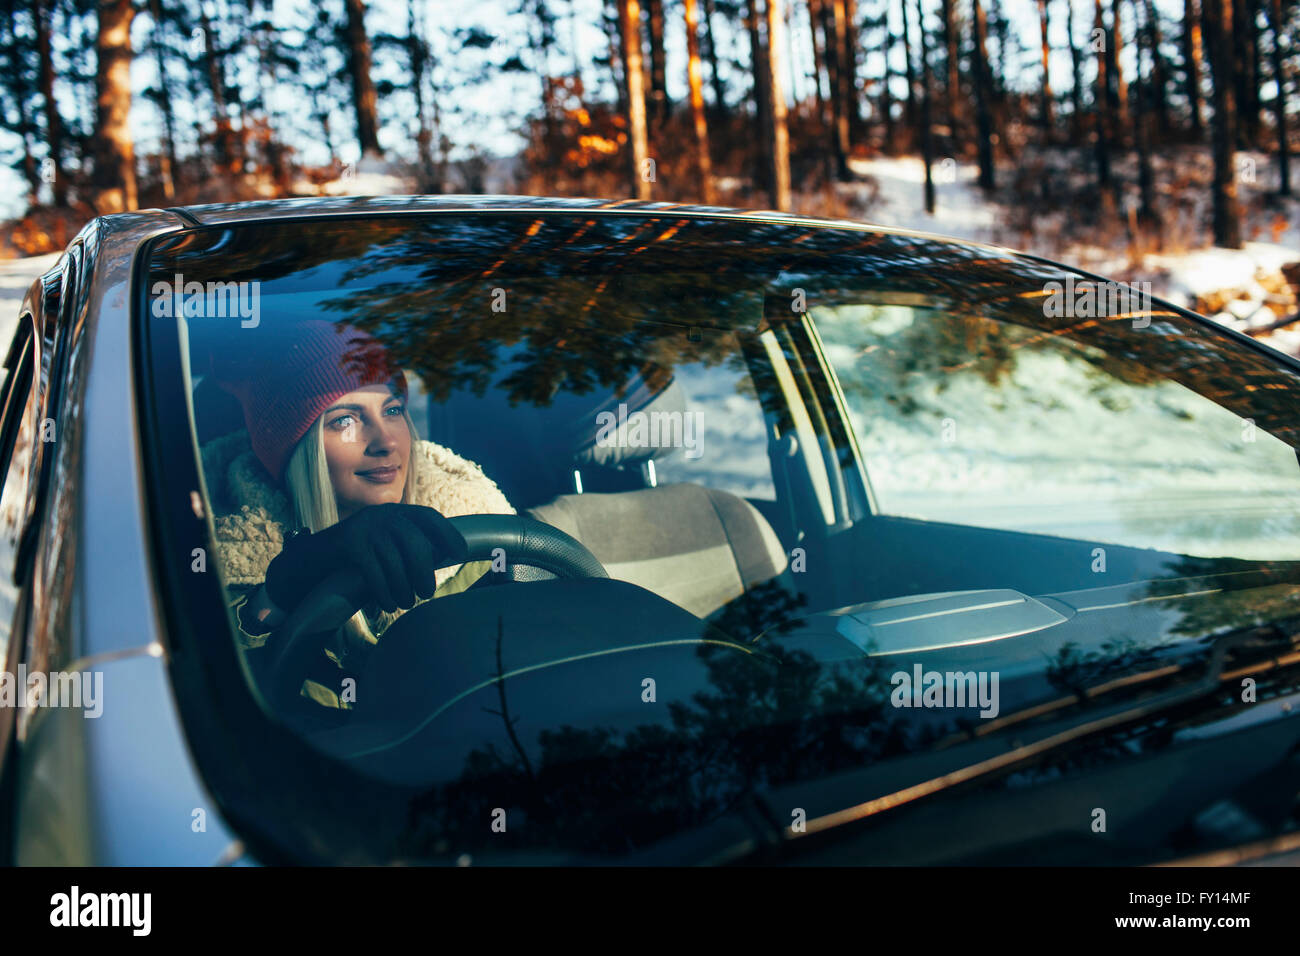 Beautiful woman in warm clothing driving car - Stock Image